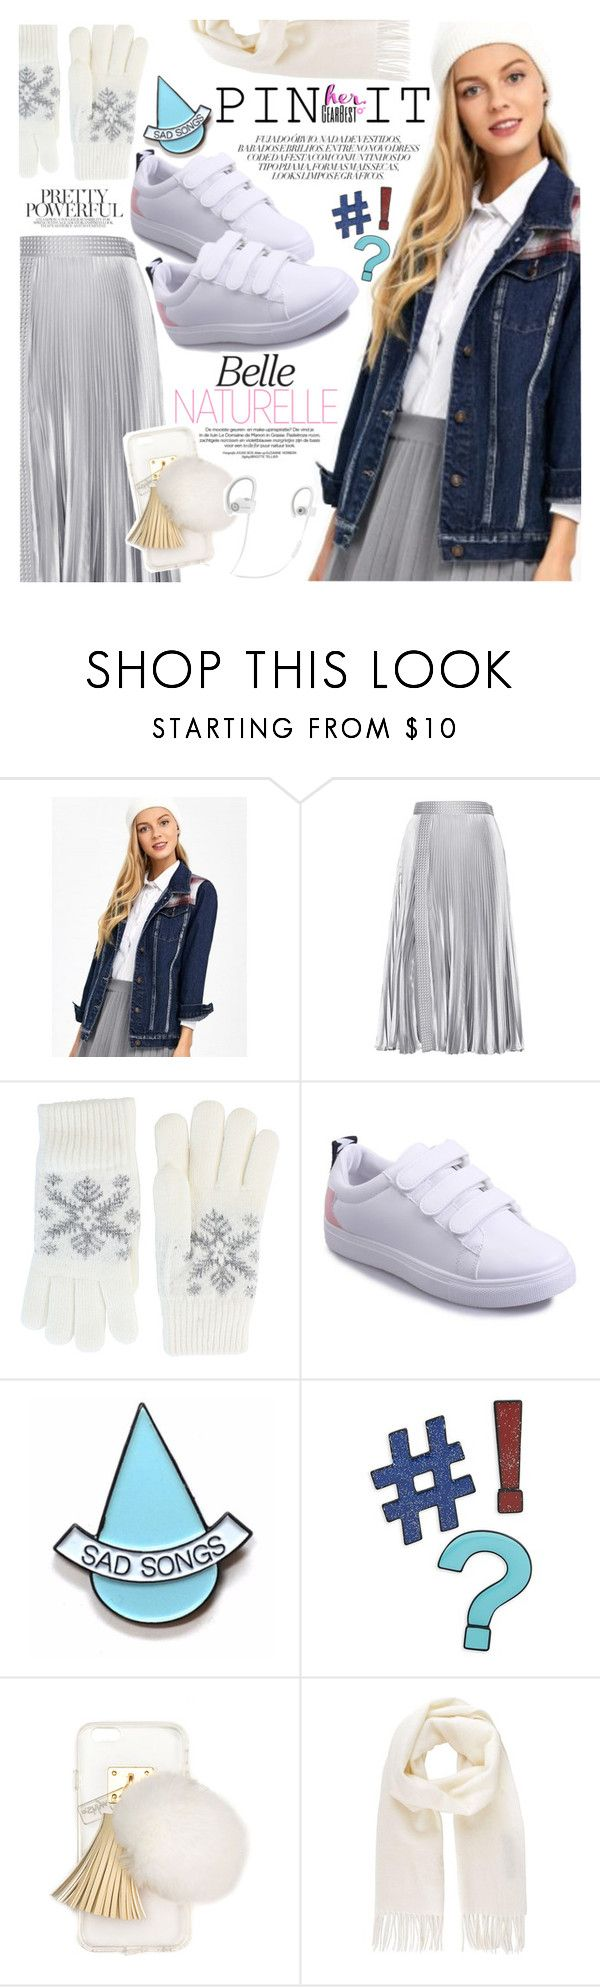 """Pins With Personality"" by vanjazivadinovic ❤ liked on Polyvore featuring Christopher Kane, Fits, Stay Home Club, Design Lab, Ashlyn'd, Vivienne Westwood, Beats by Dr. Dre, pins, polyvoreeditorial and gearbest"